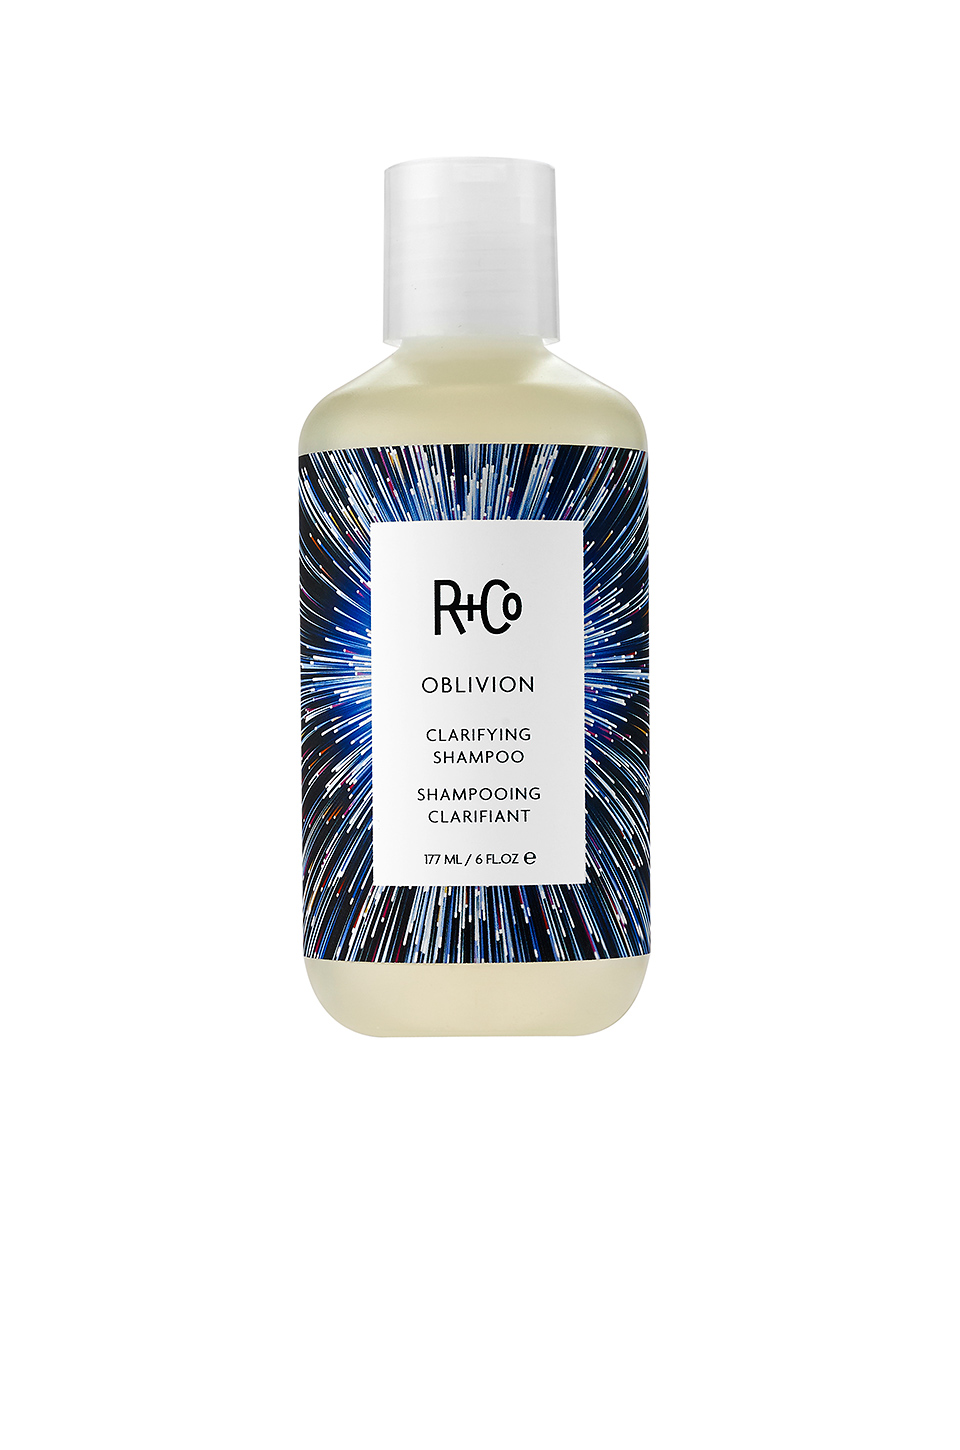 R+Co Oblivion Clarifying Shampoo in